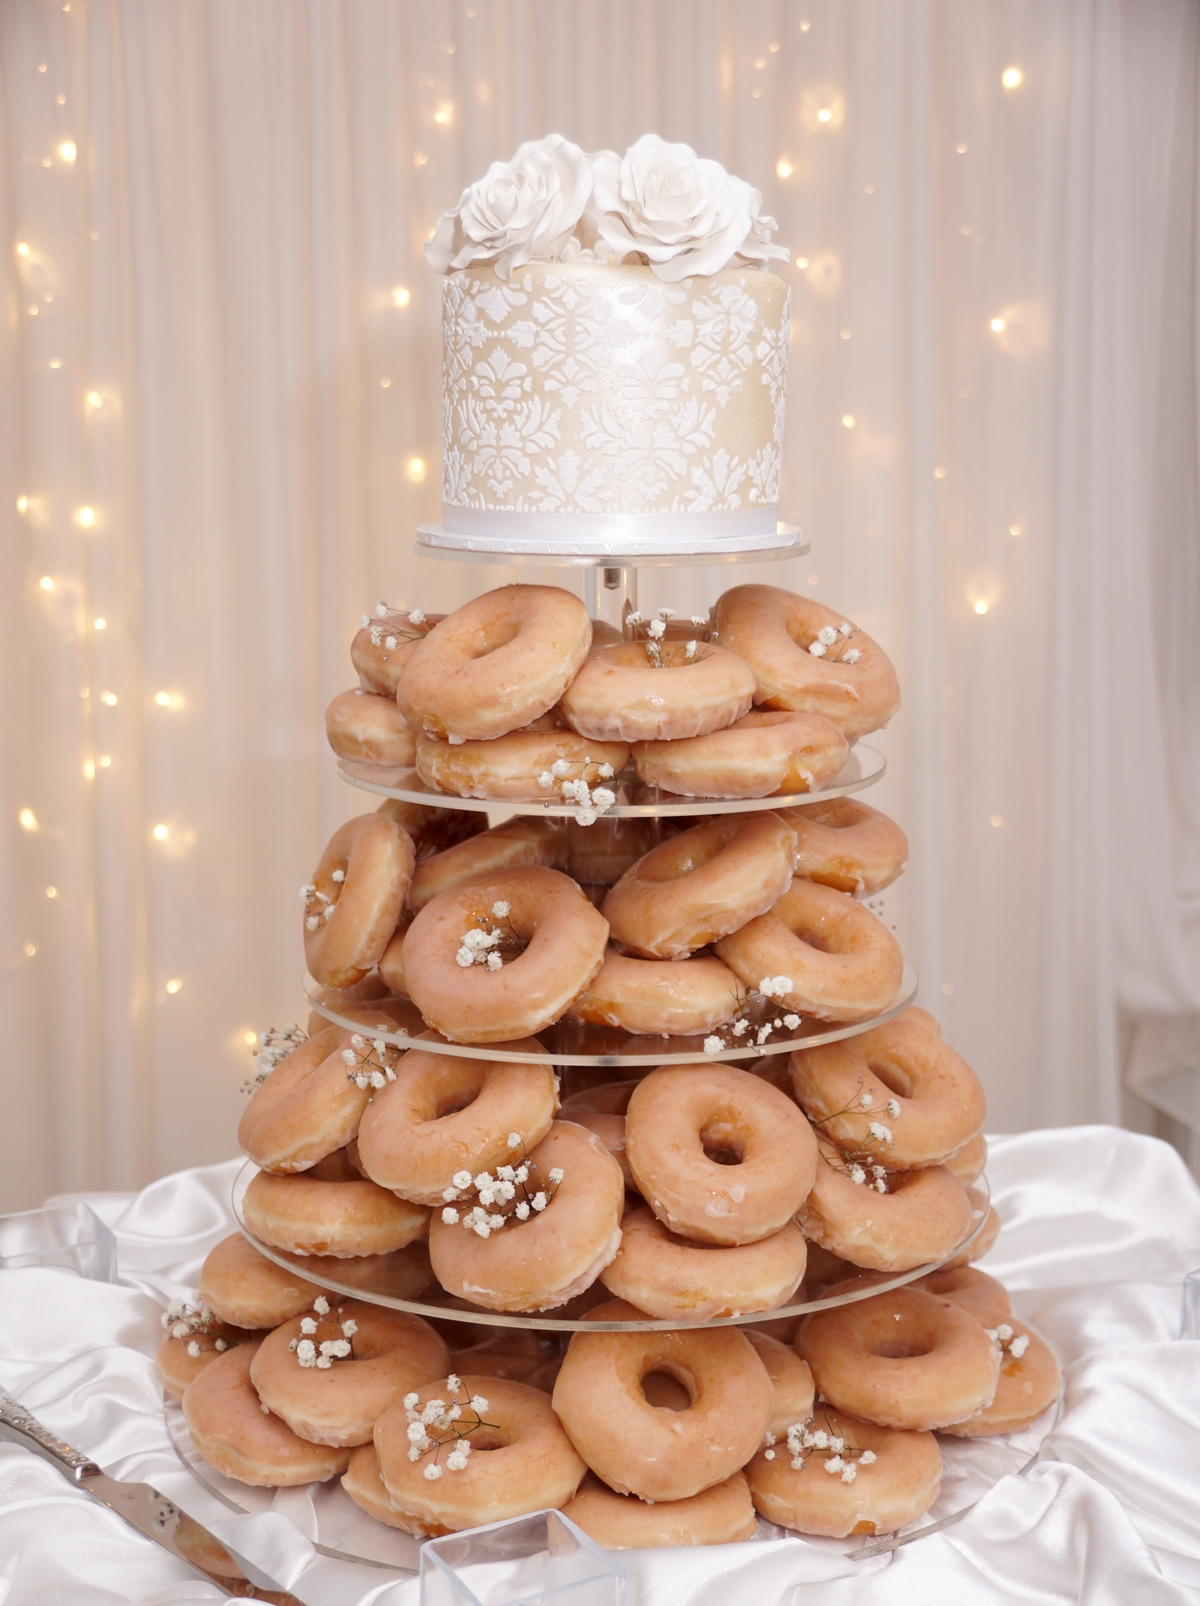 Donut Tower 25.03.18 1